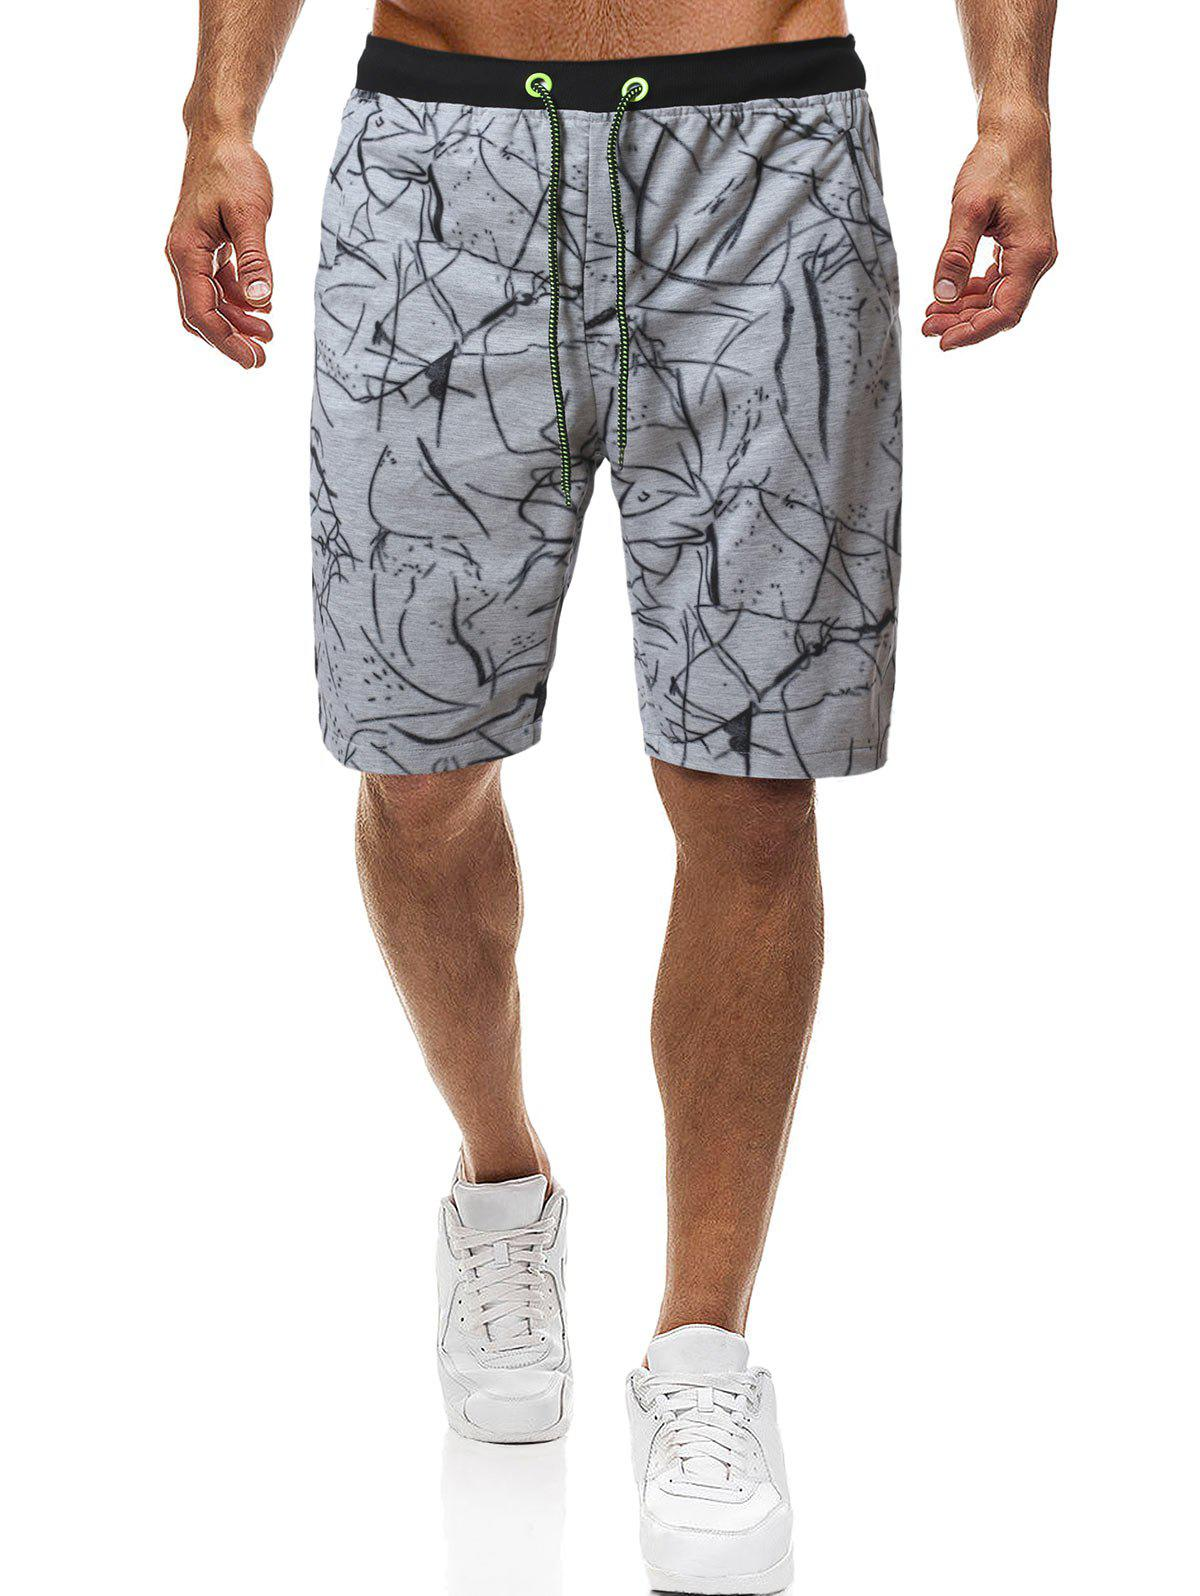 Irregular Print Drawstring Shorts - GRAY M